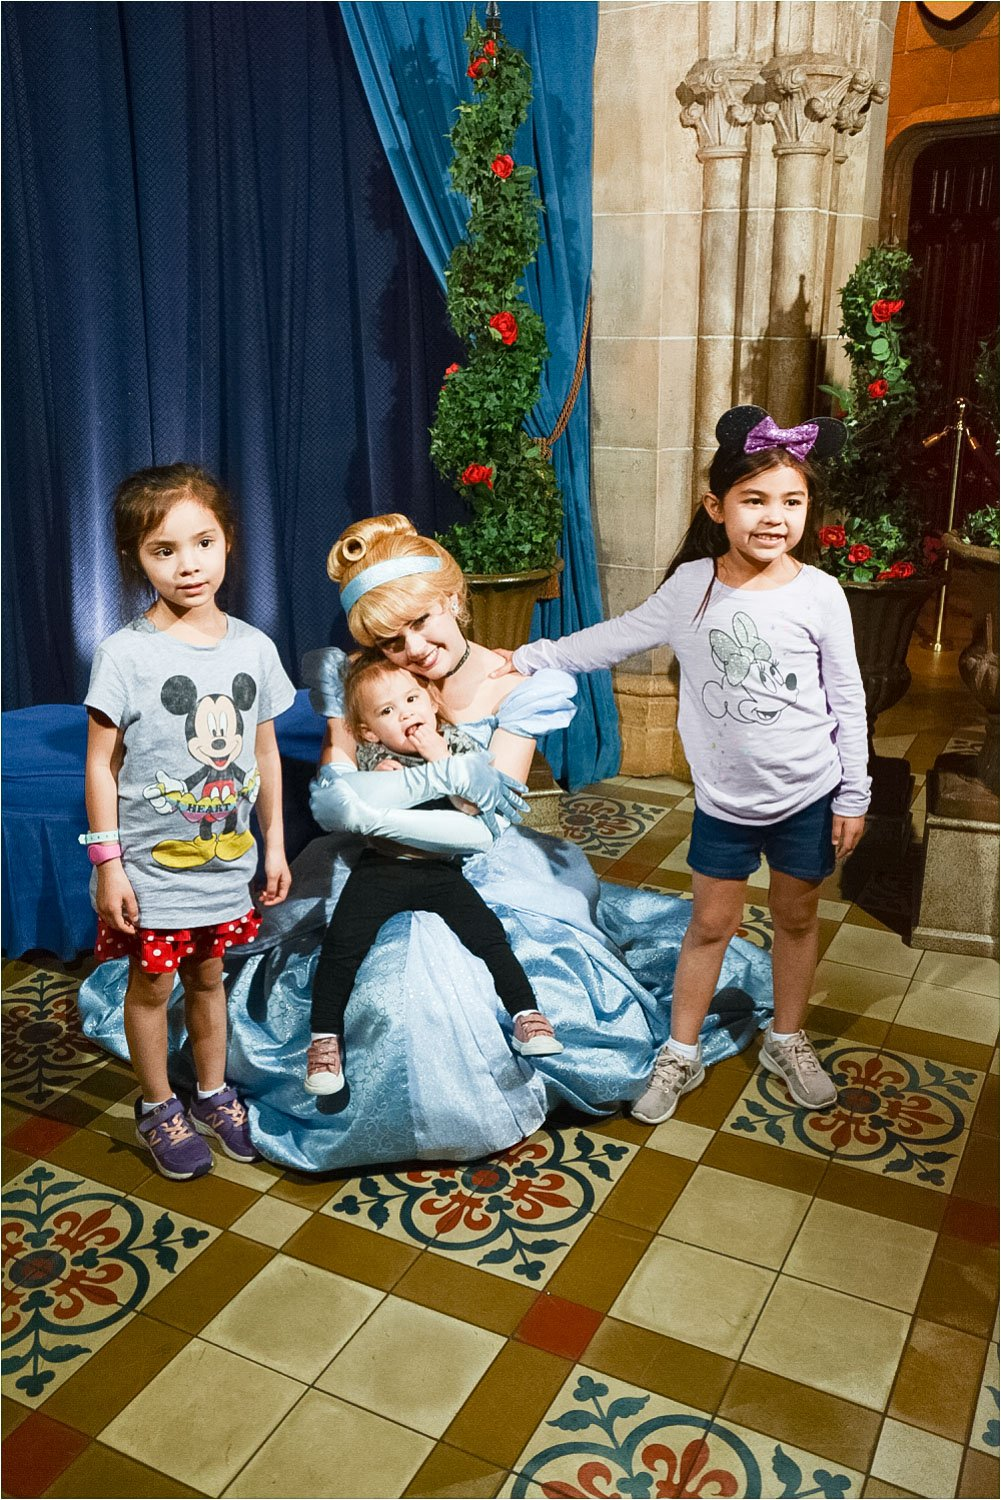 Disney restaurant review at Cinderella's Royal Table photo with Cinderella